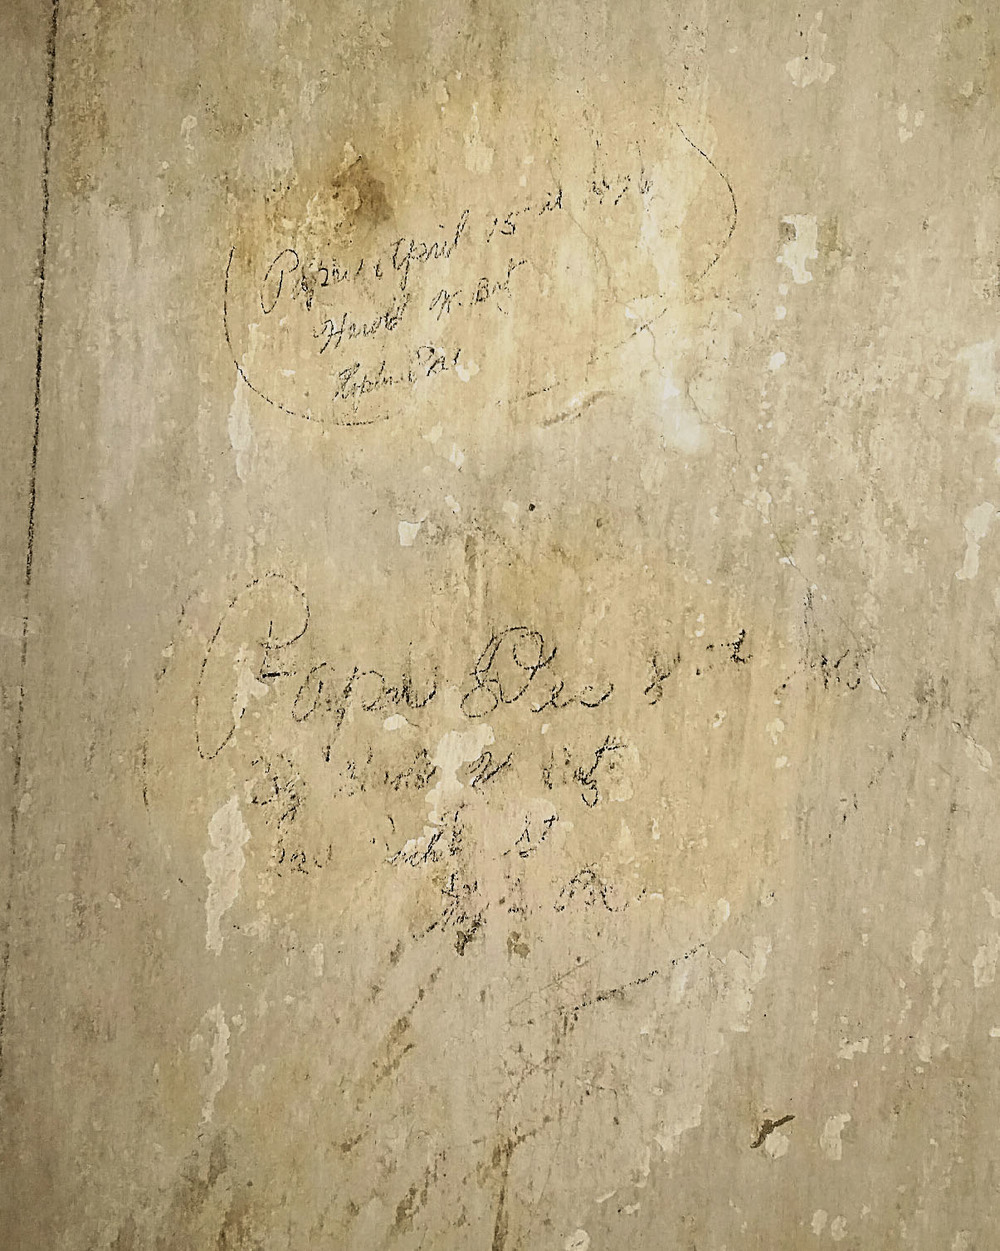 Found this writing under the wallpaper in the hallway. It's difficult to make out but it looks like the dates of when they papered the wall.